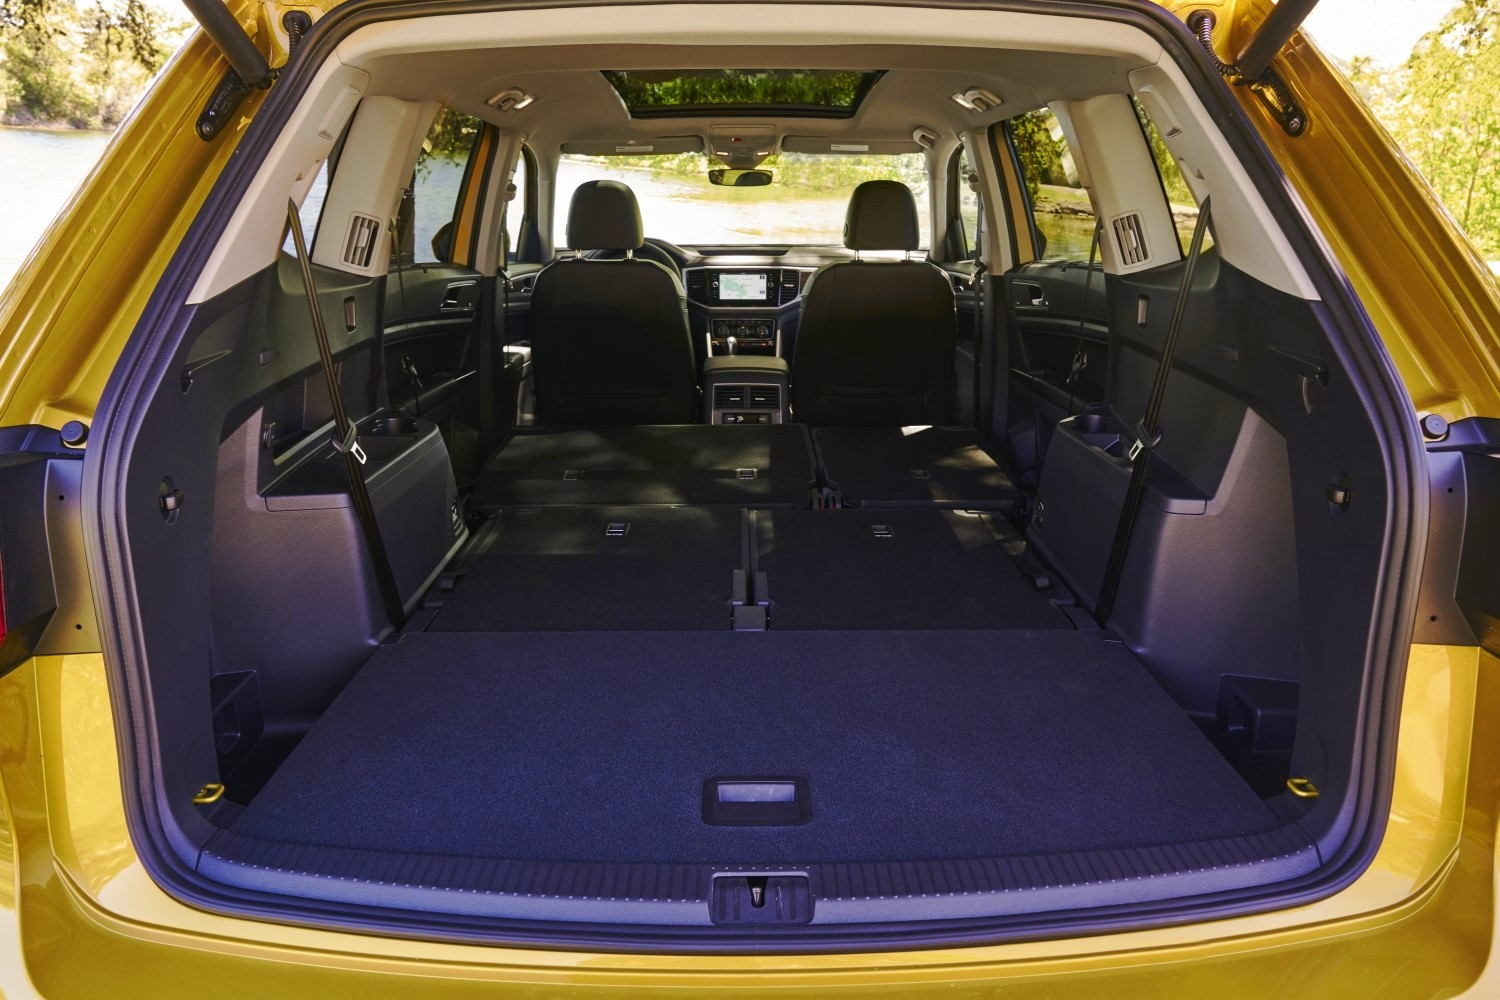 2018 VW Atlas 3 Row Seats Folded